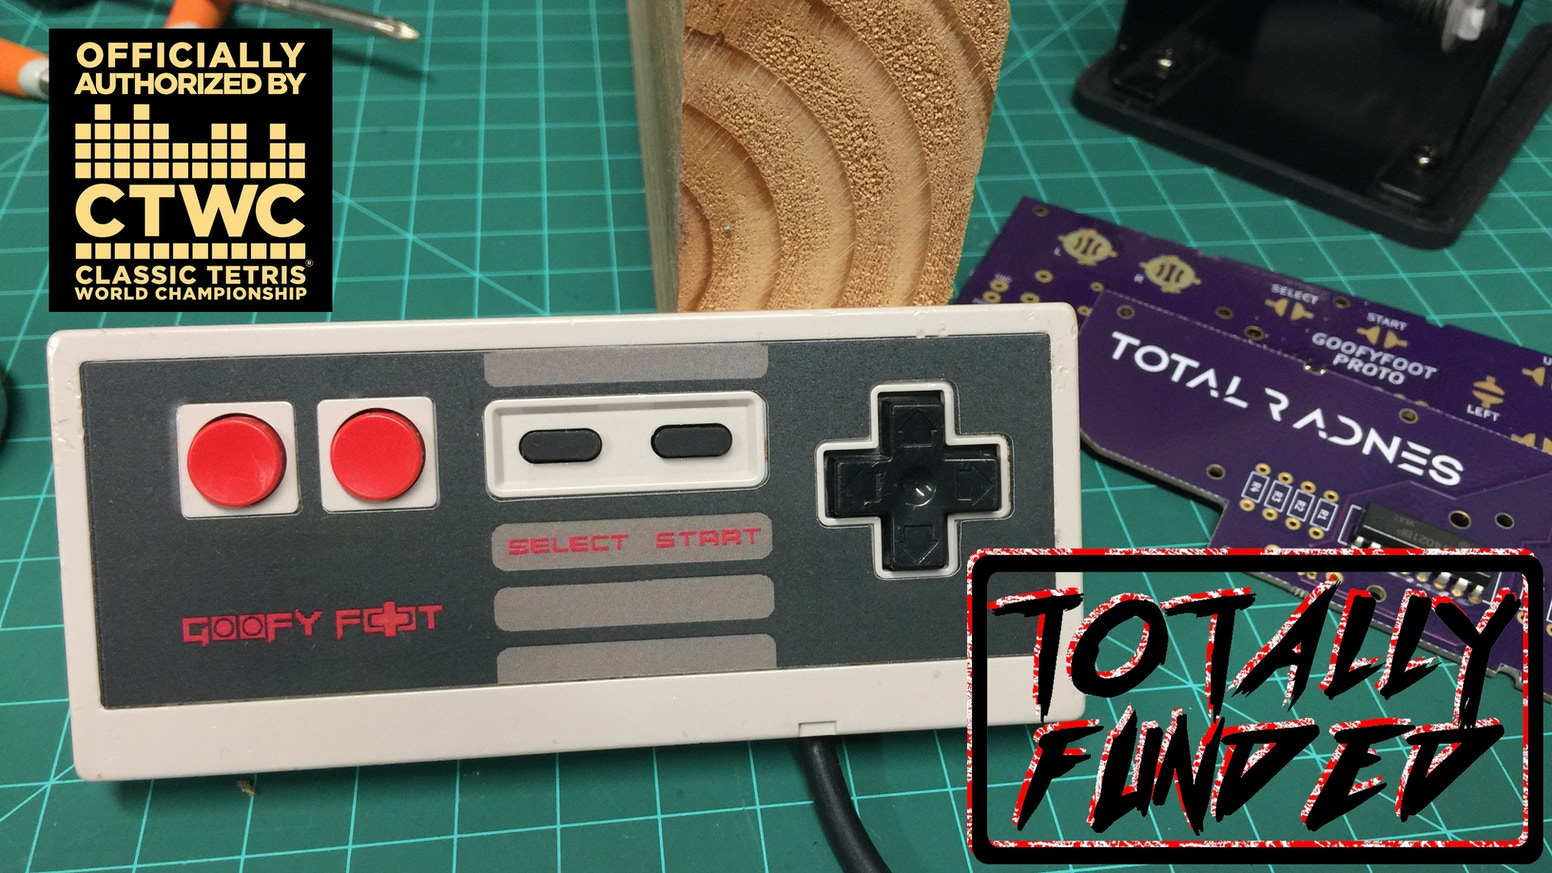 This Goofy Foot conversion kit, puts the D-Pad on the right, giving you the power to play your favorite arcade port like you once did.